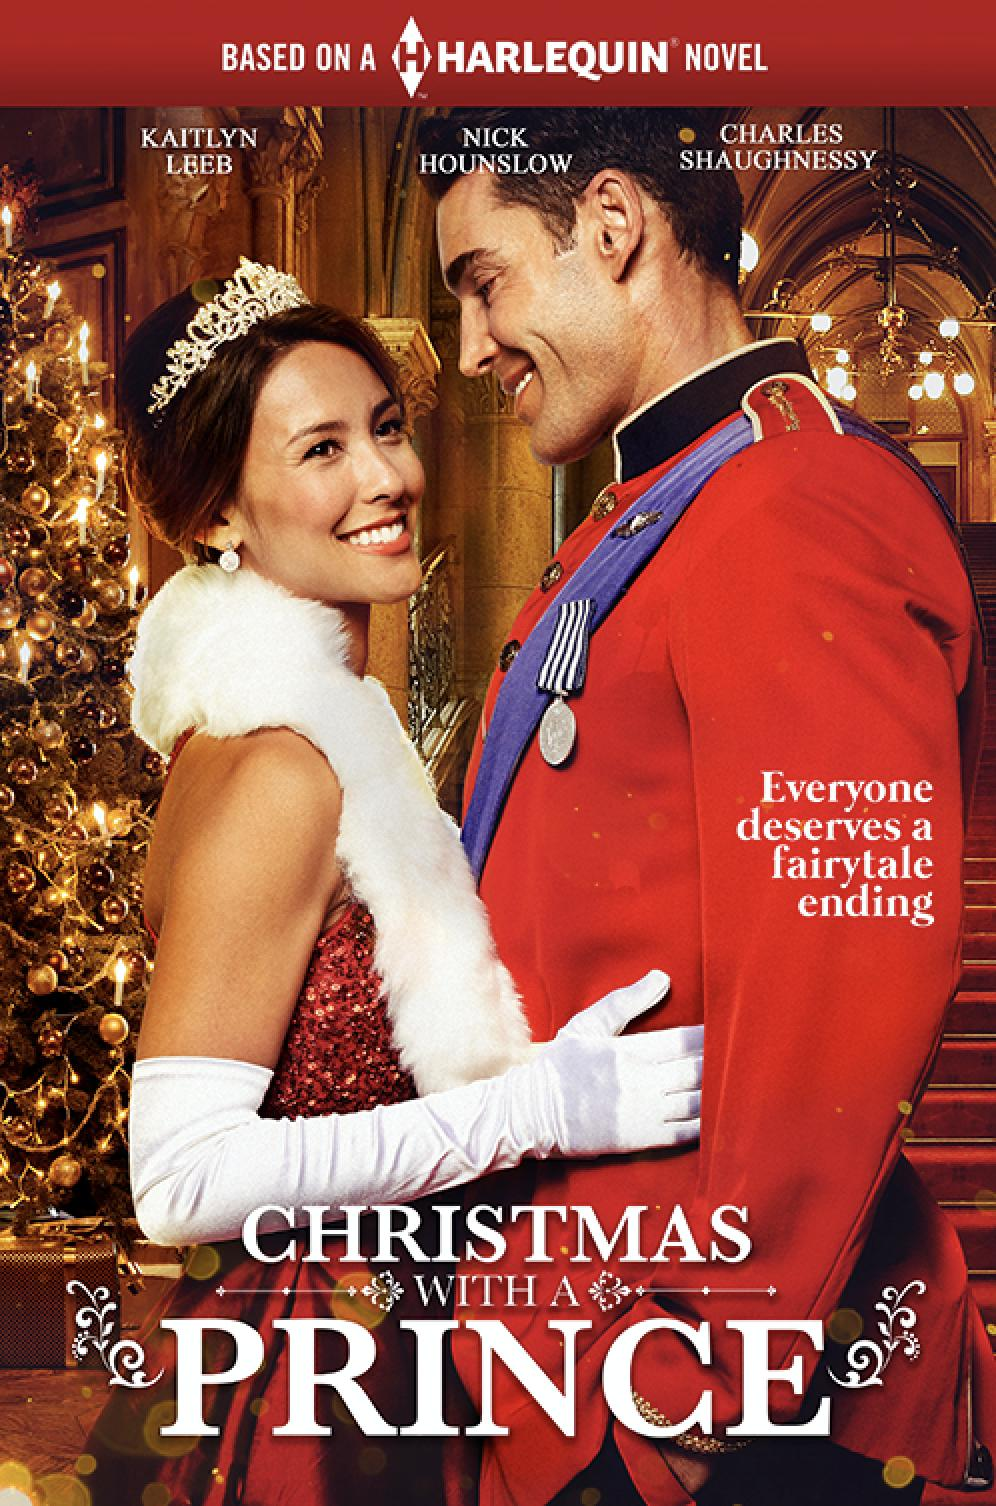 a prince for christmas full movie free online